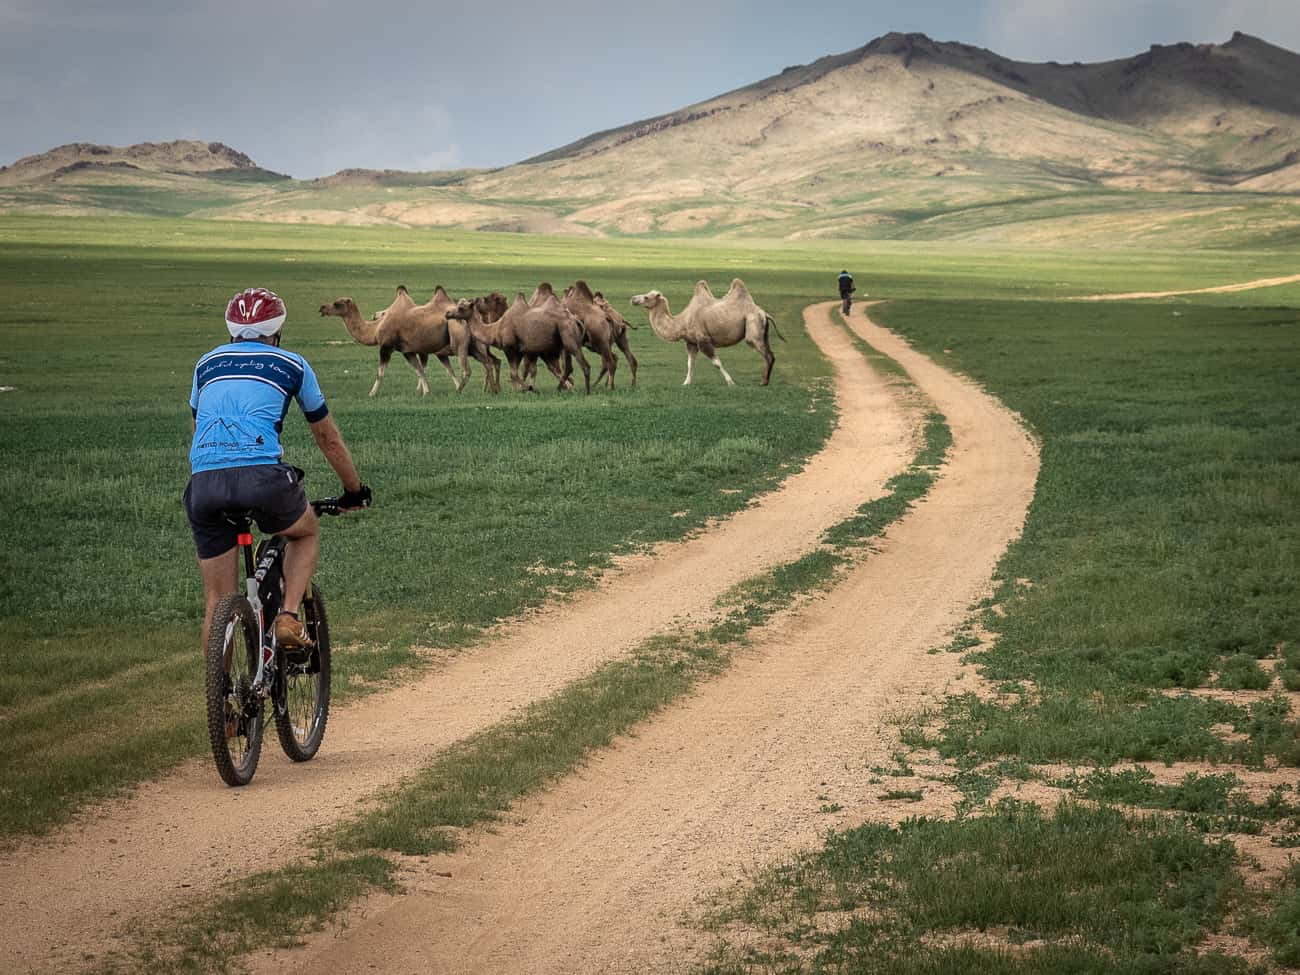 a cyclist on tour in Mongolia passing a herd of camels